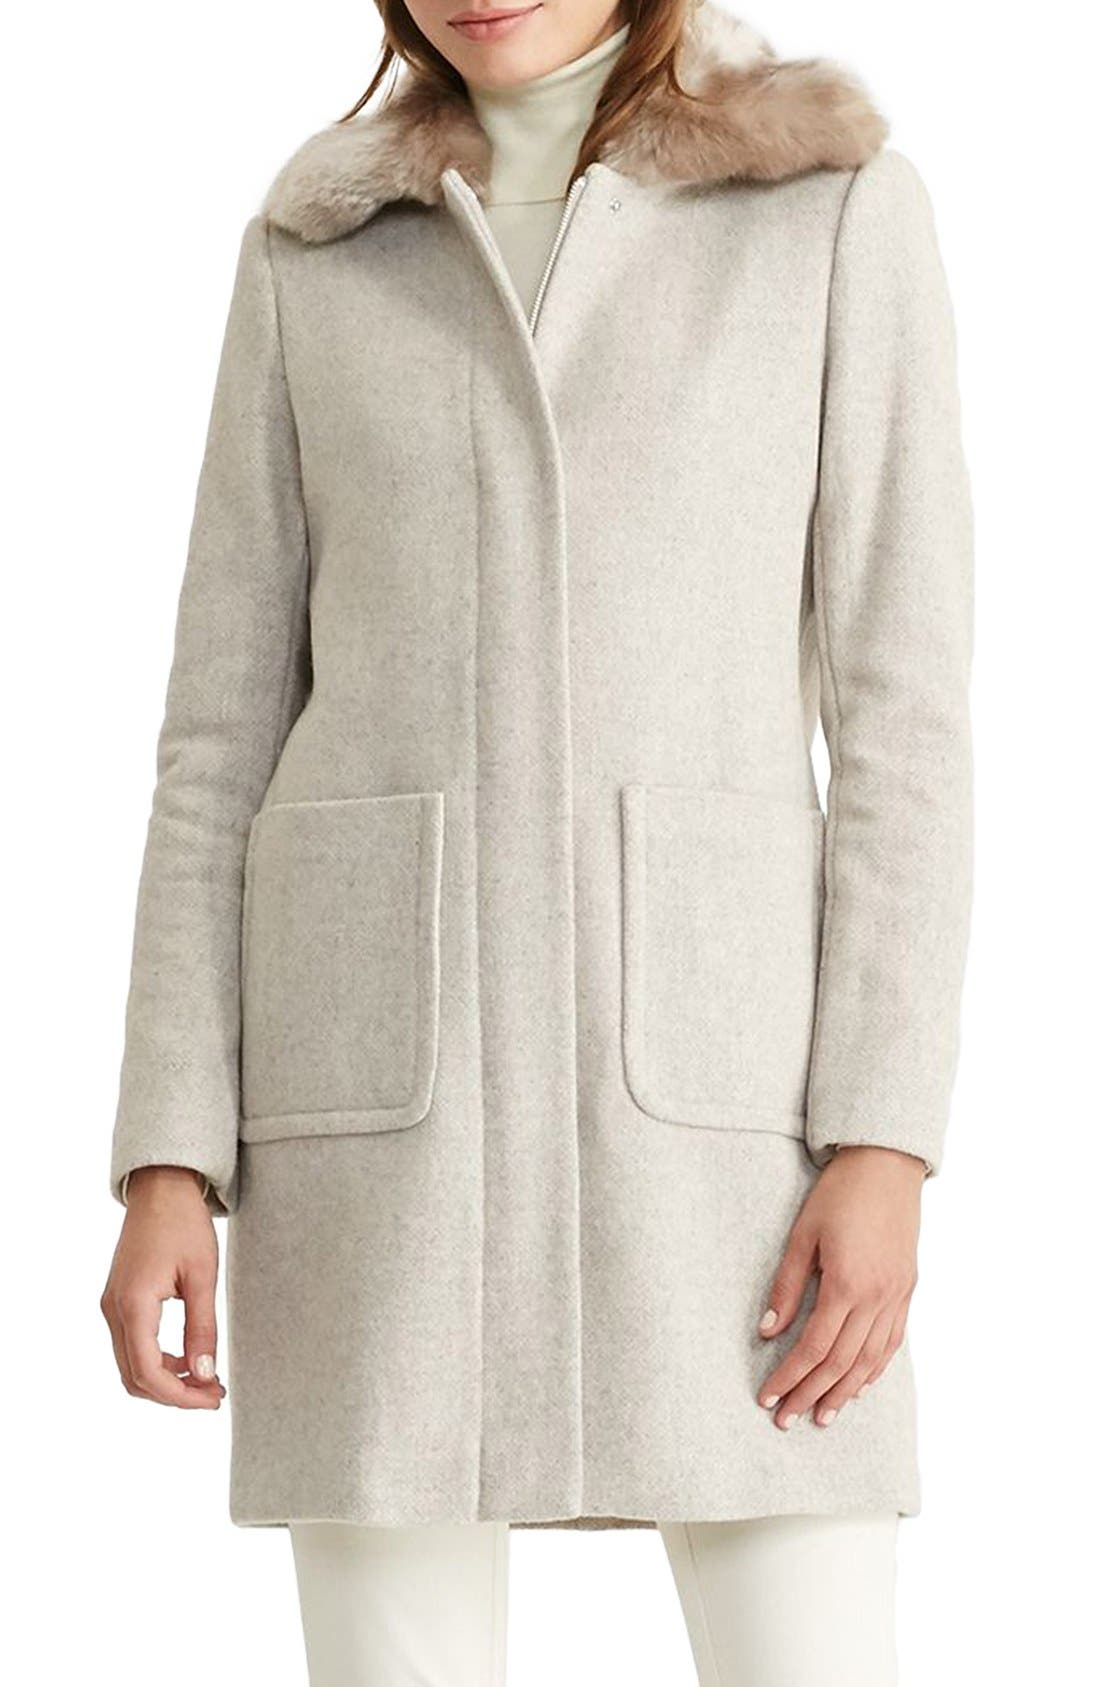 Main Image - Lauren Ralph Lauren Wool Blend Coat with Faux Fur Collar (Regular & Petite)